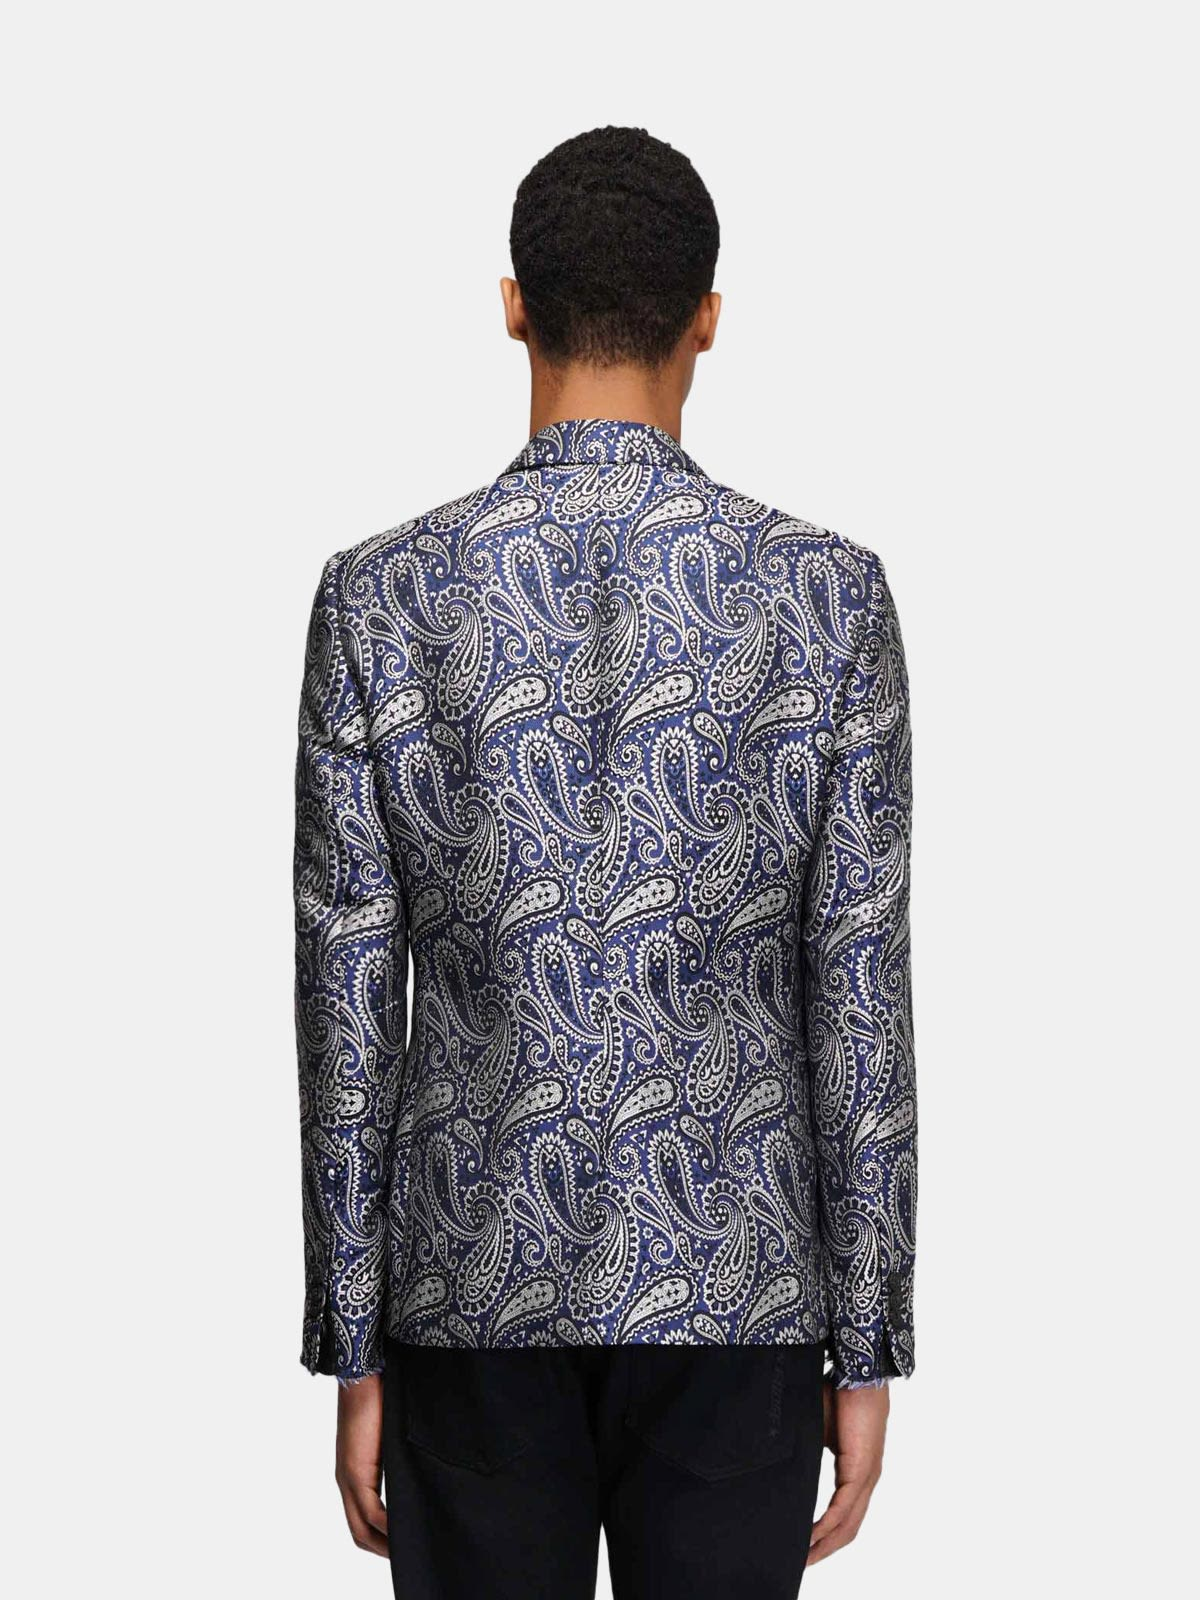 Golden Goose - Single-breasted Milano jacket with jacquard paisley motif in